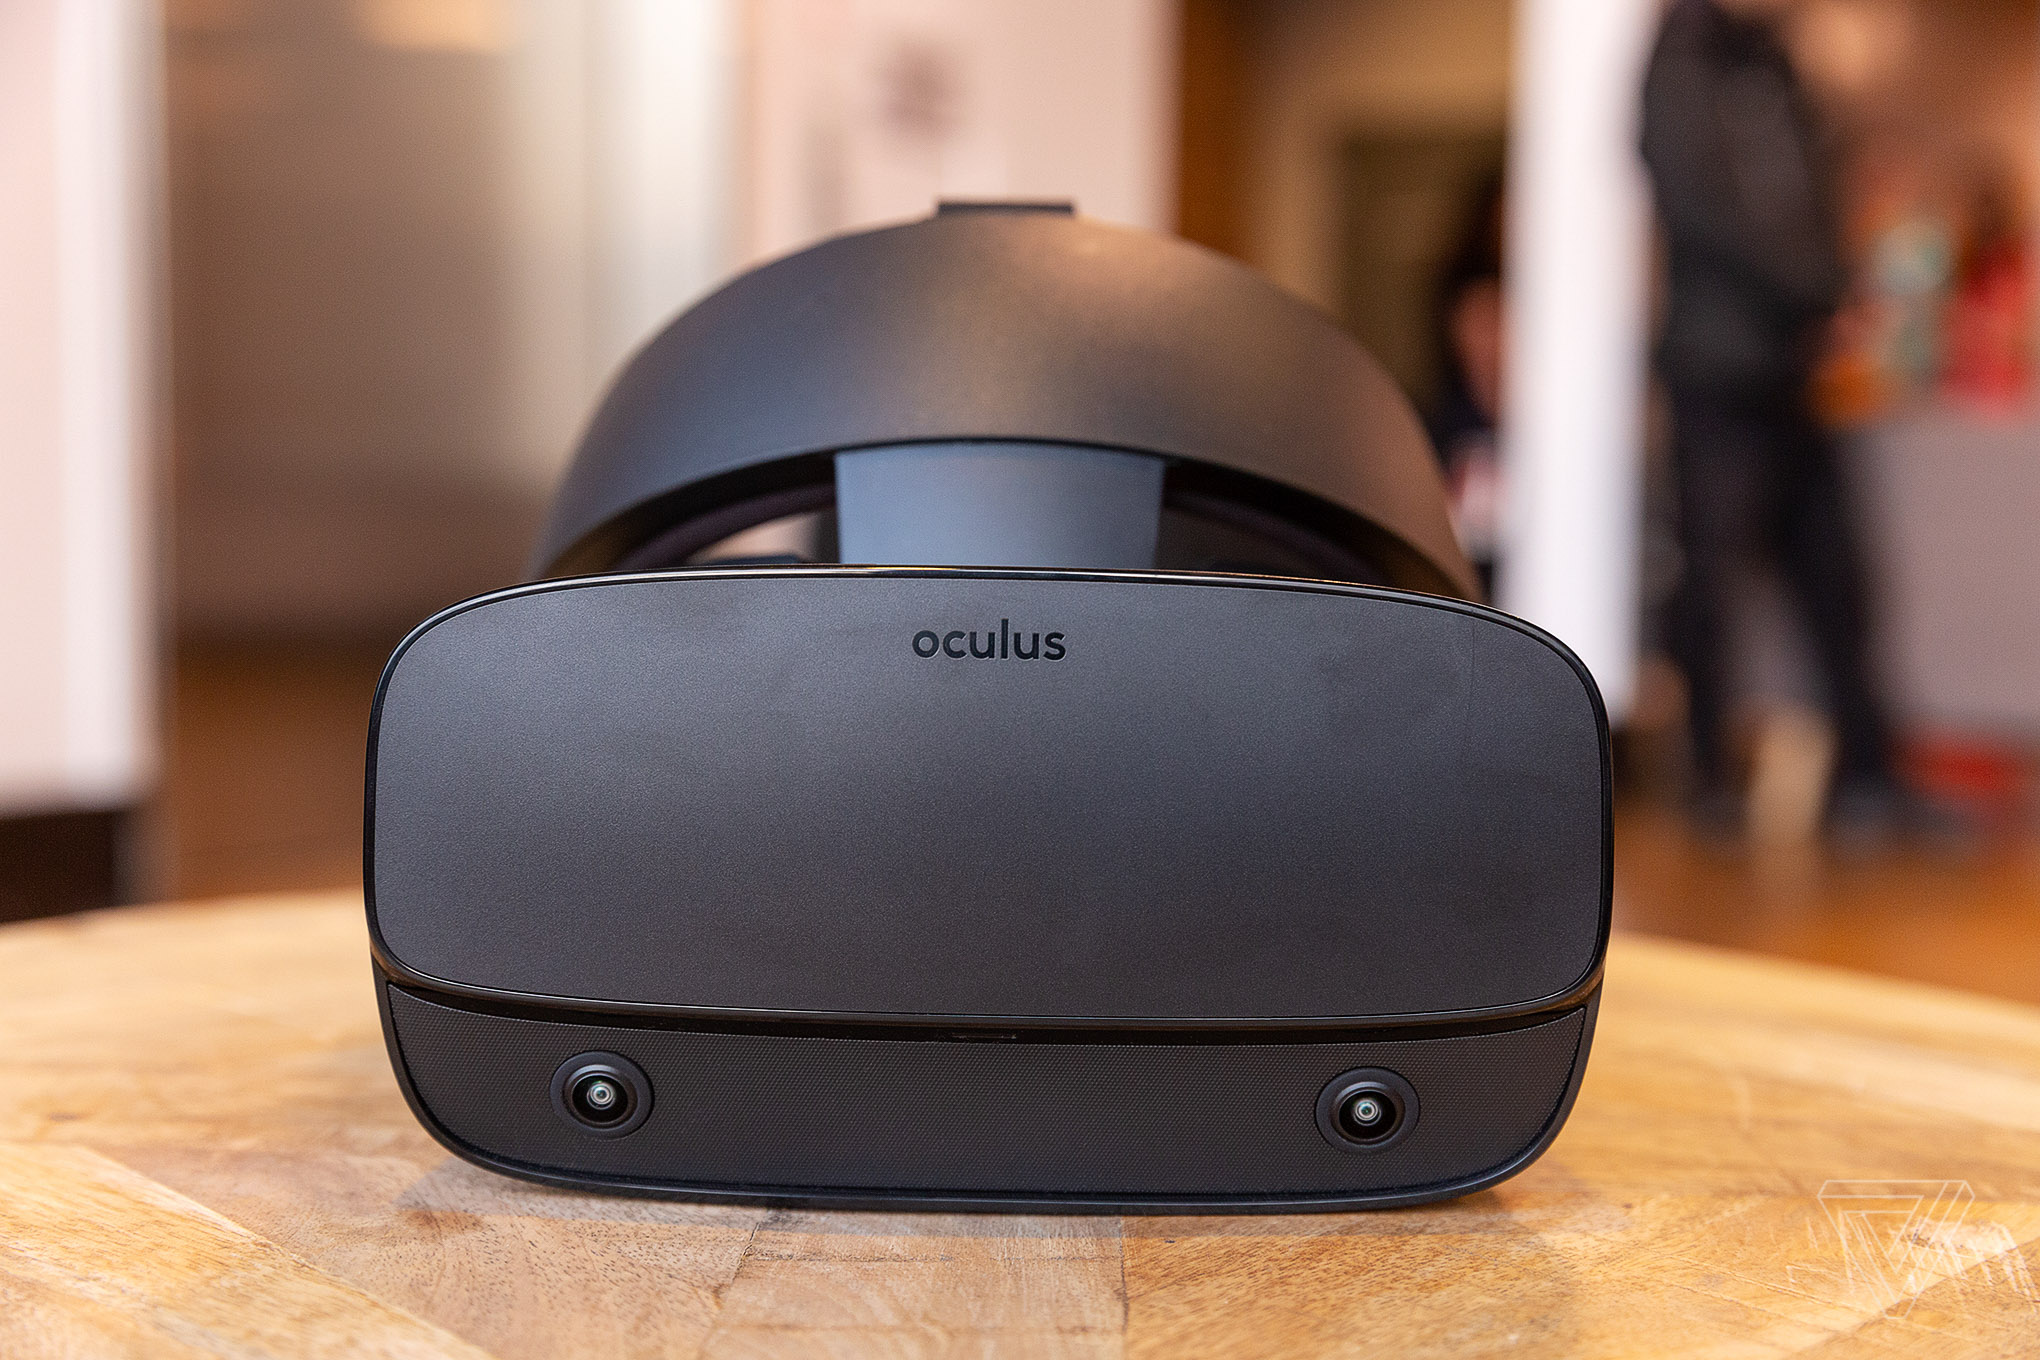 Oculus unveils the Rift S, a higher-resolution VR headset